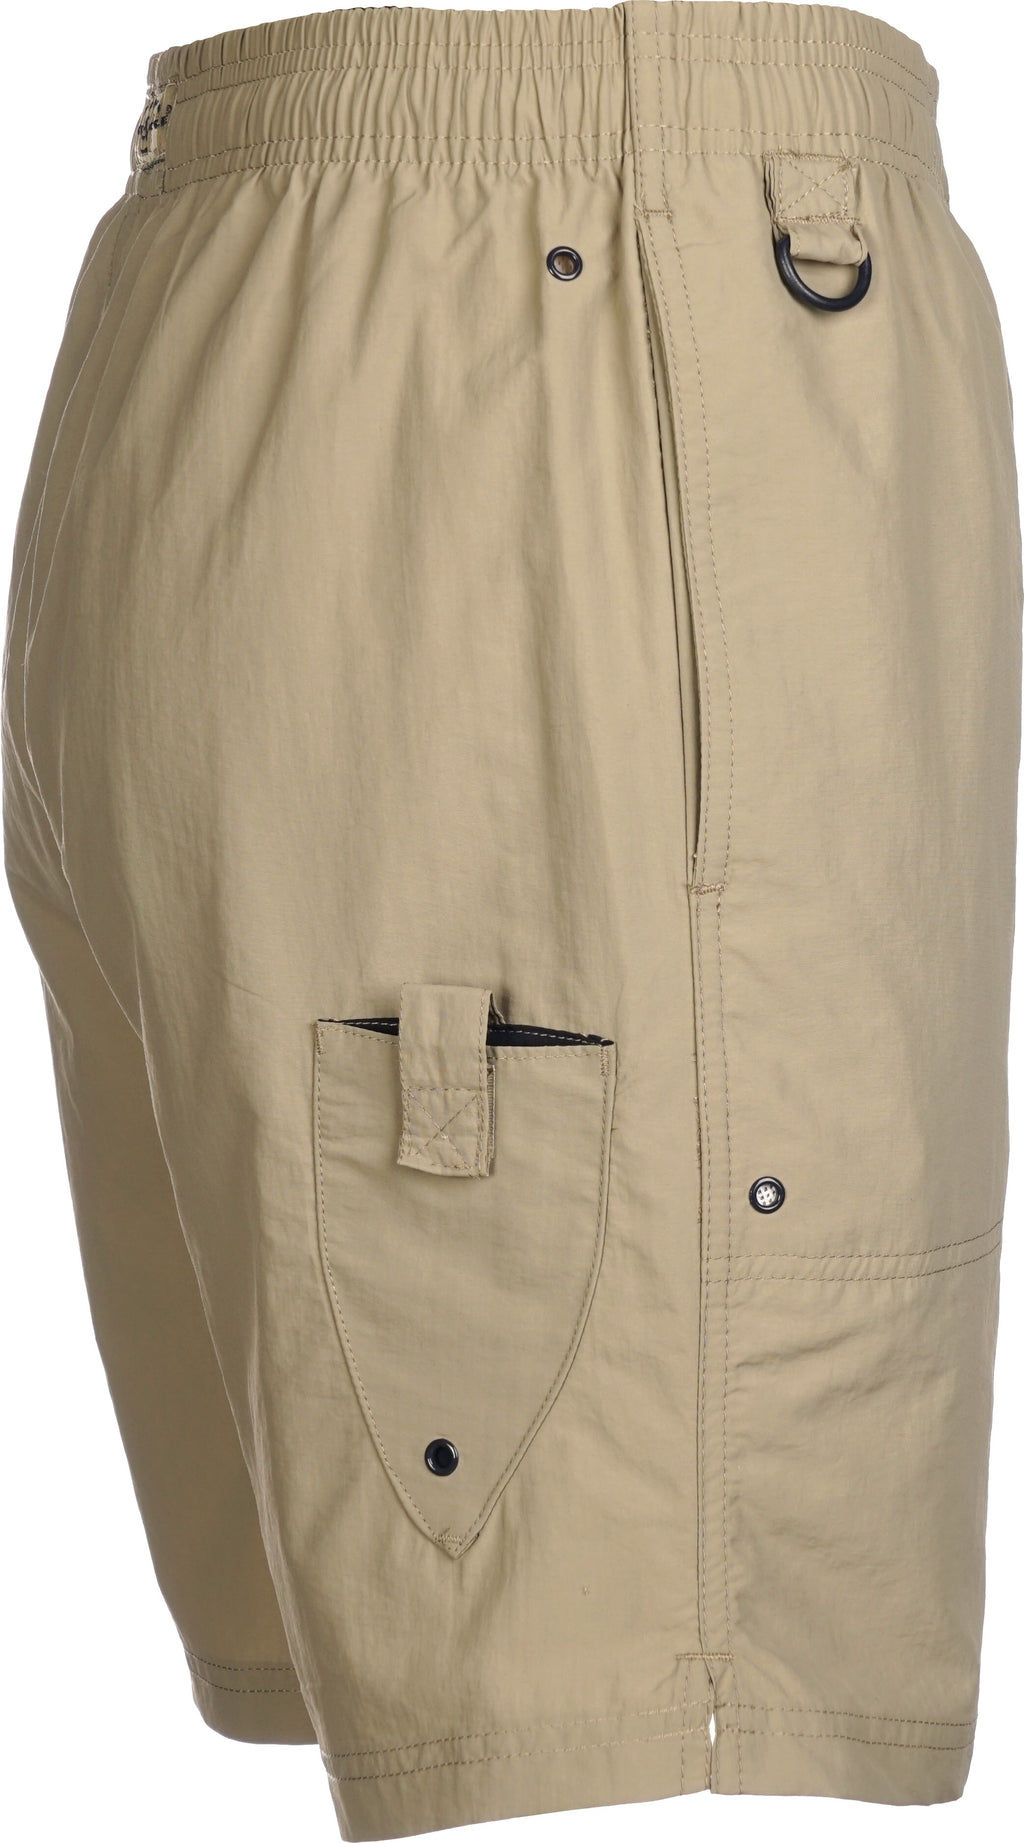 Beer Can Island Fishing Trunk, Khaki